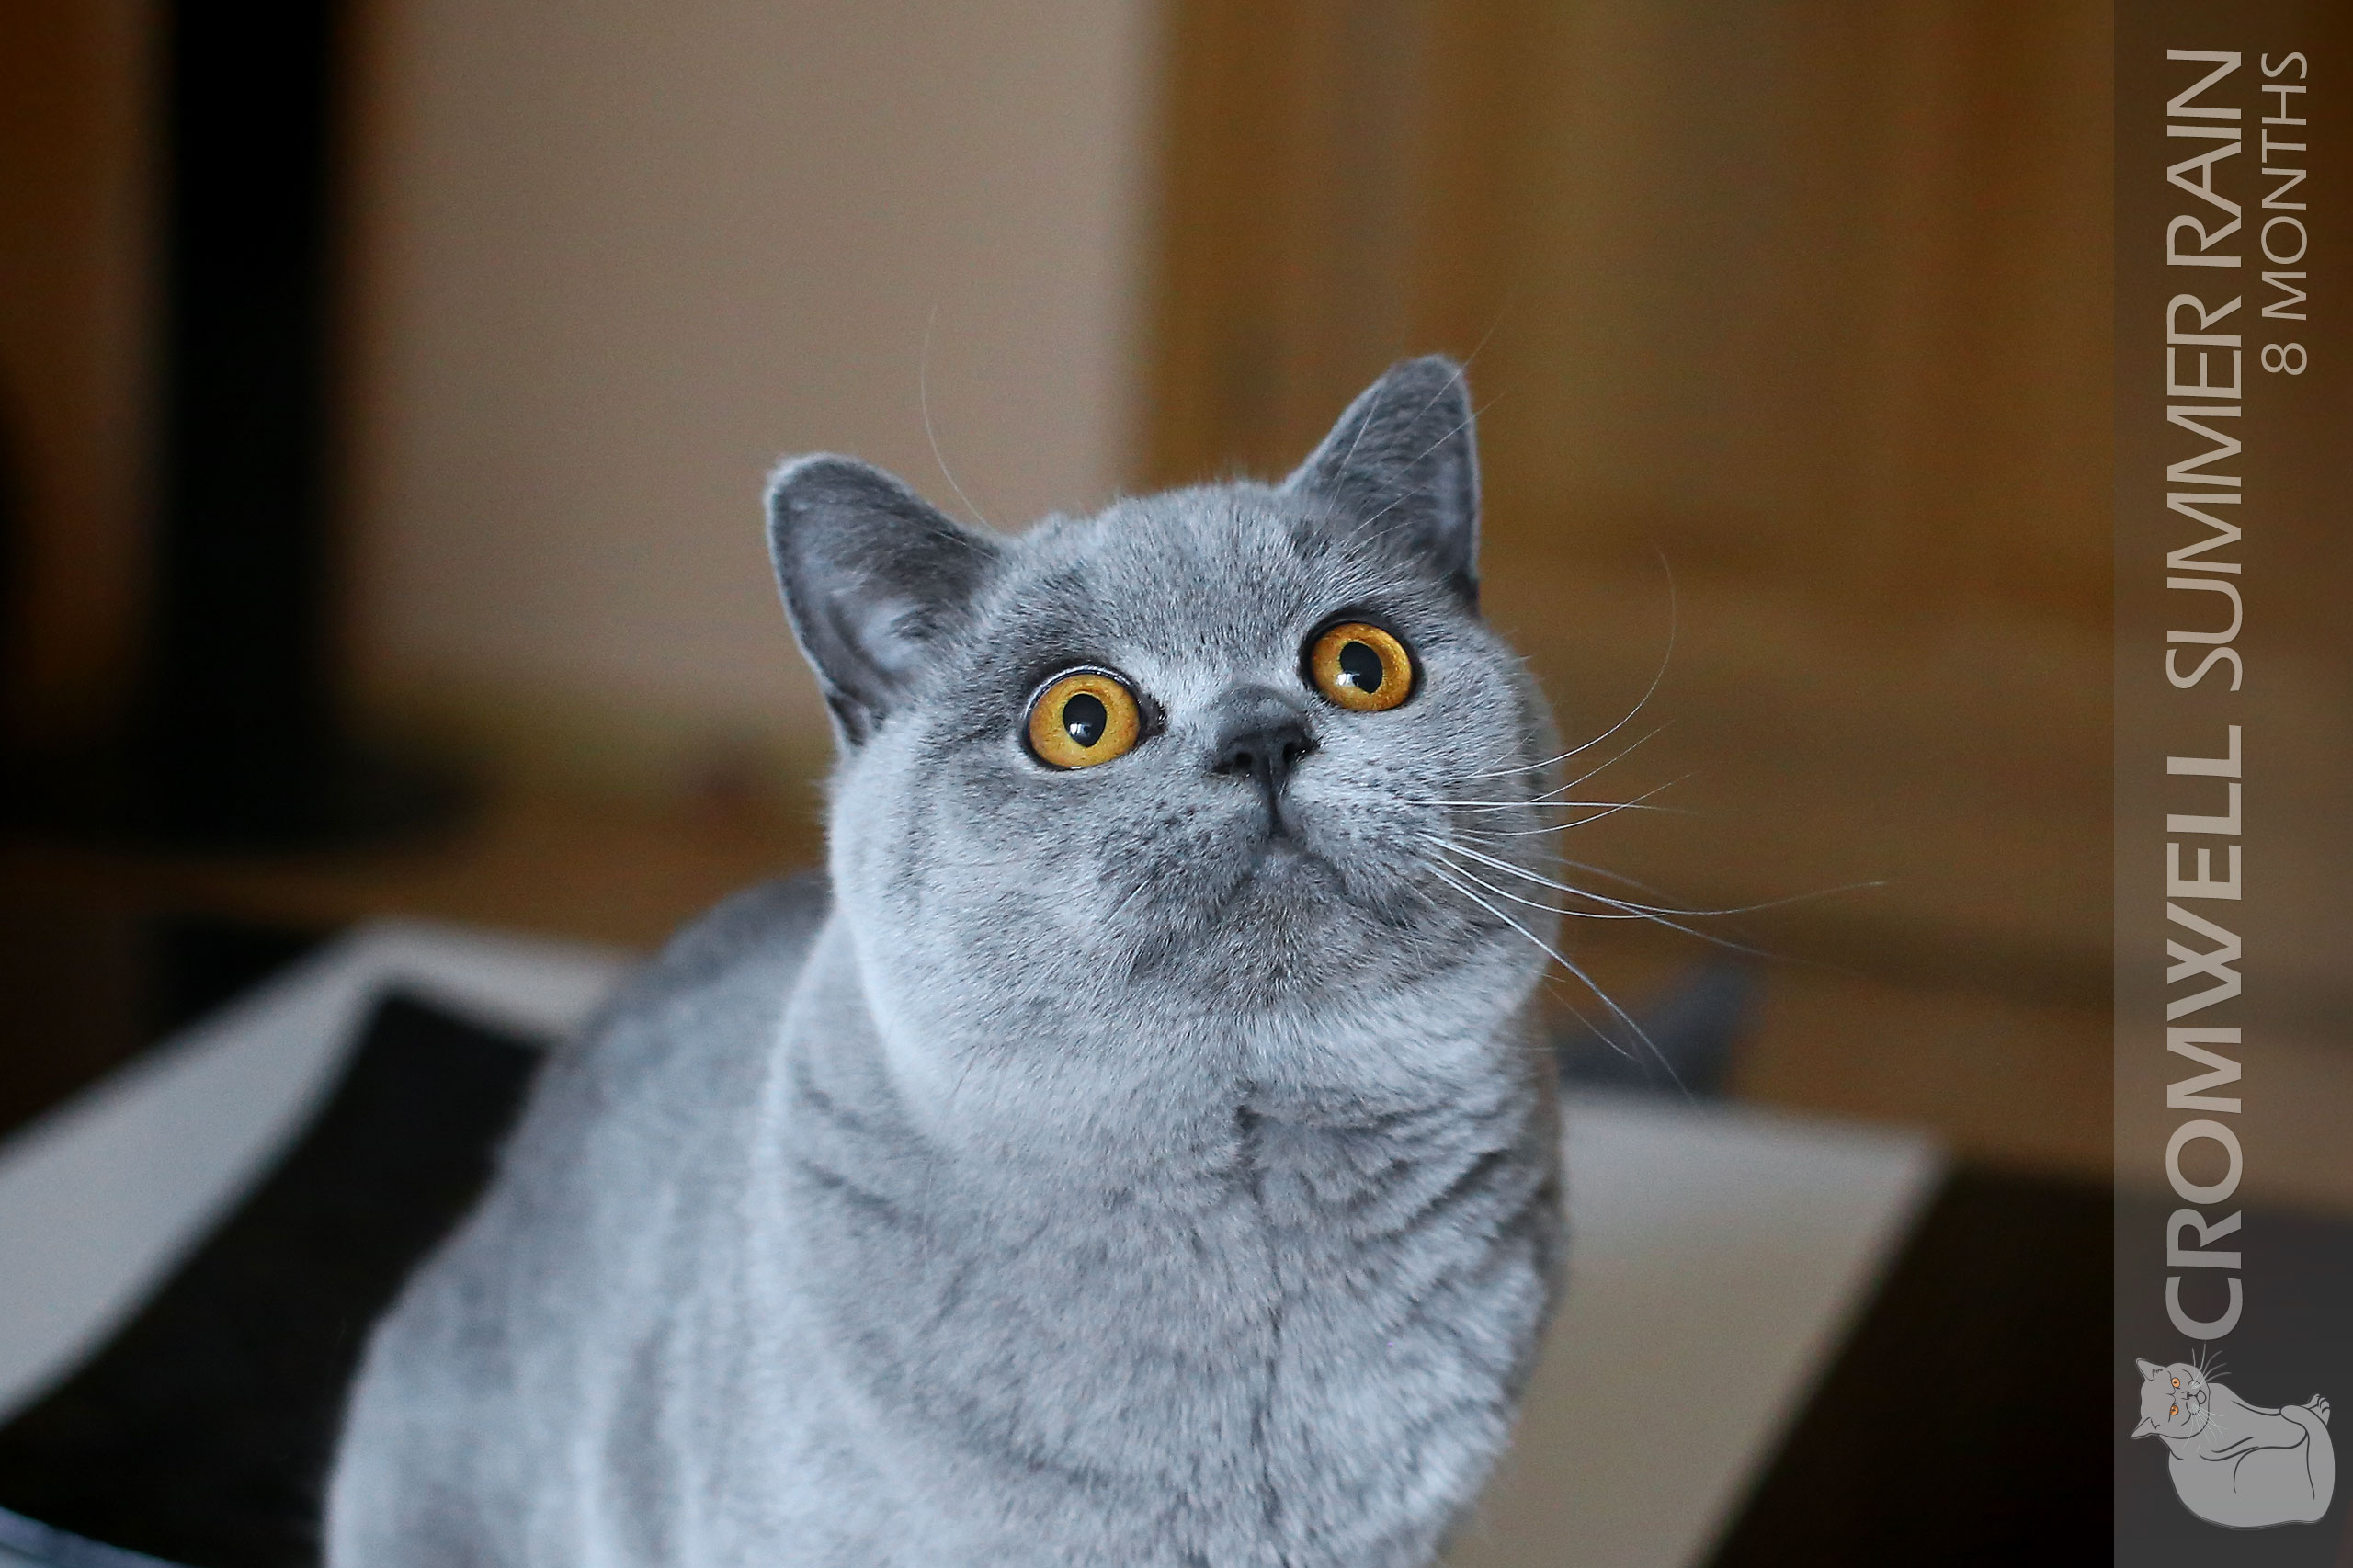 Cats Summer Blue British Shorthair 9 | Photo Gallery